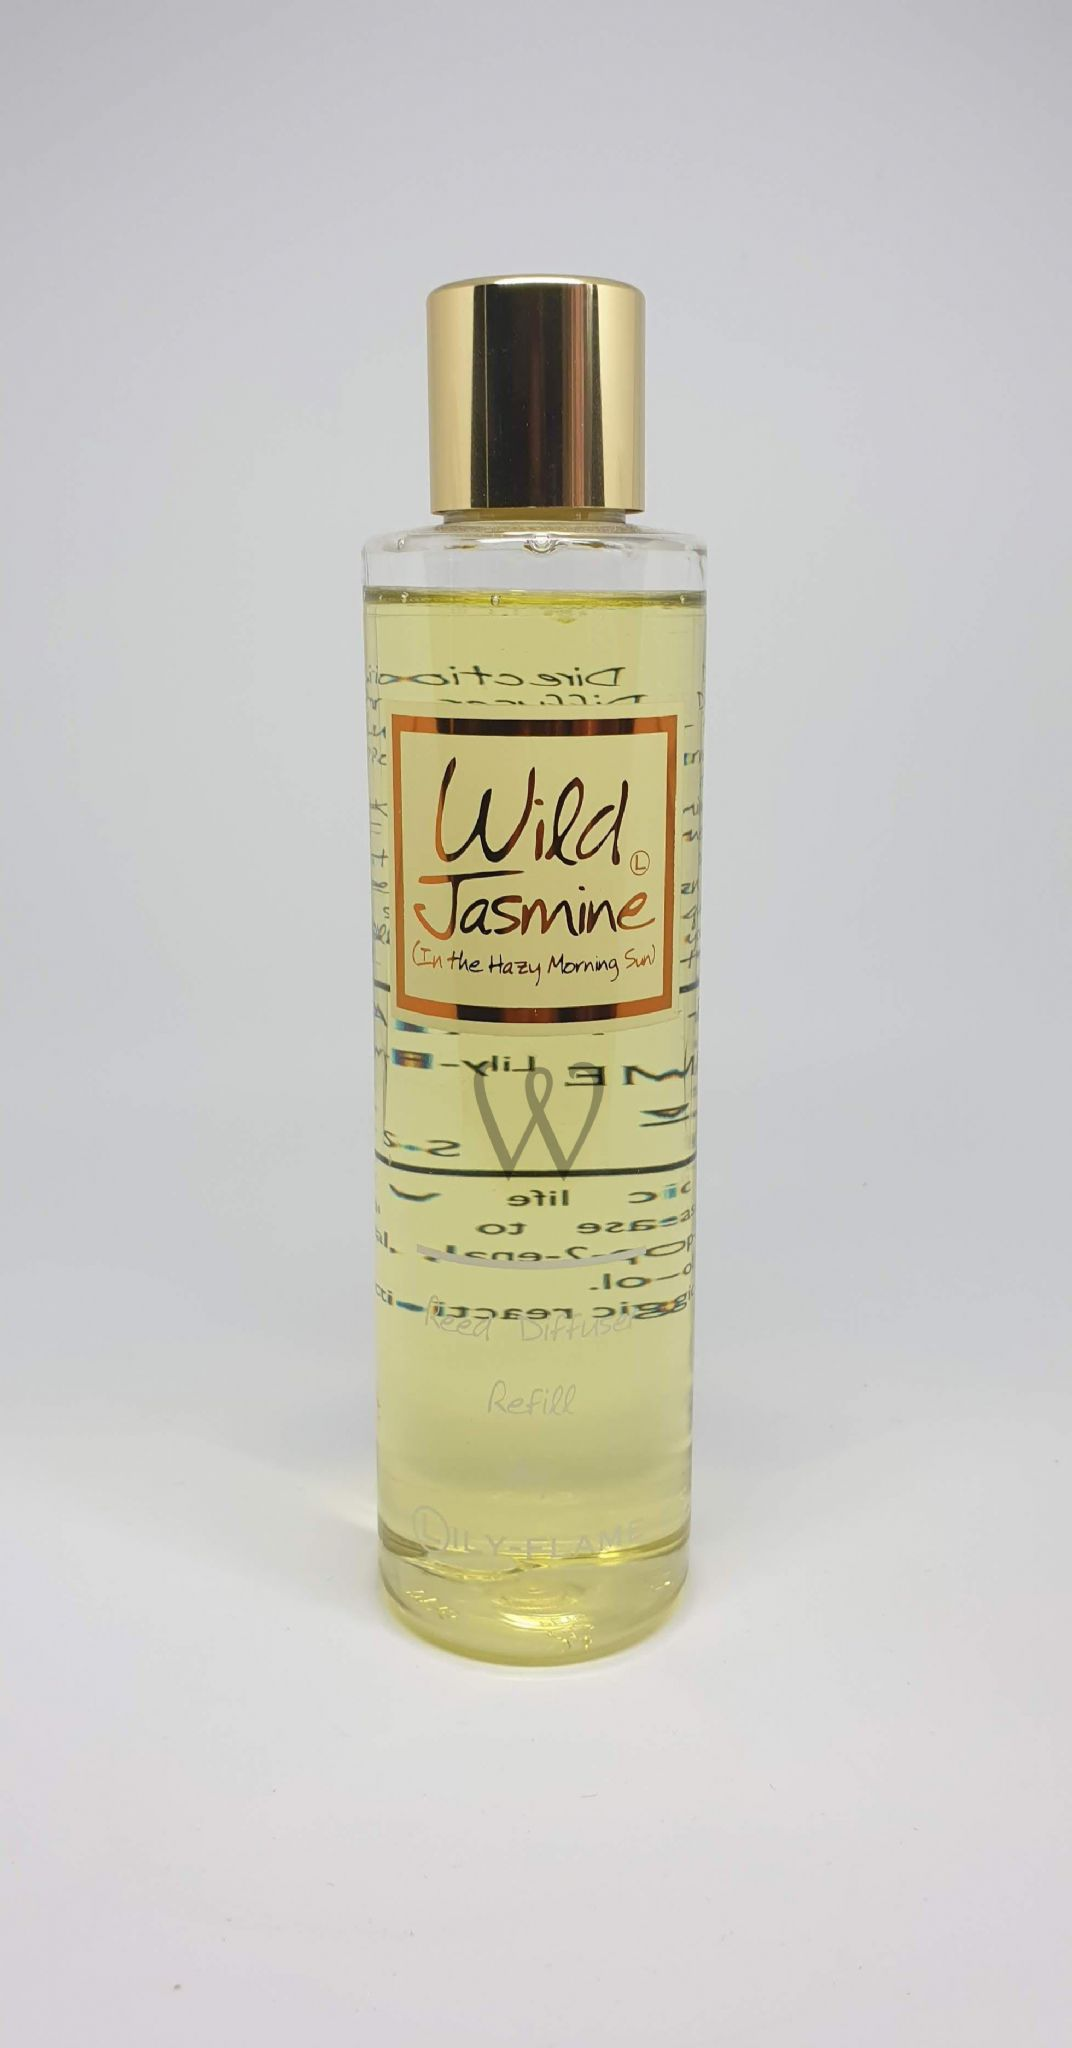 Lily flame reed diffuser refill - Wild Jasmine 200ml